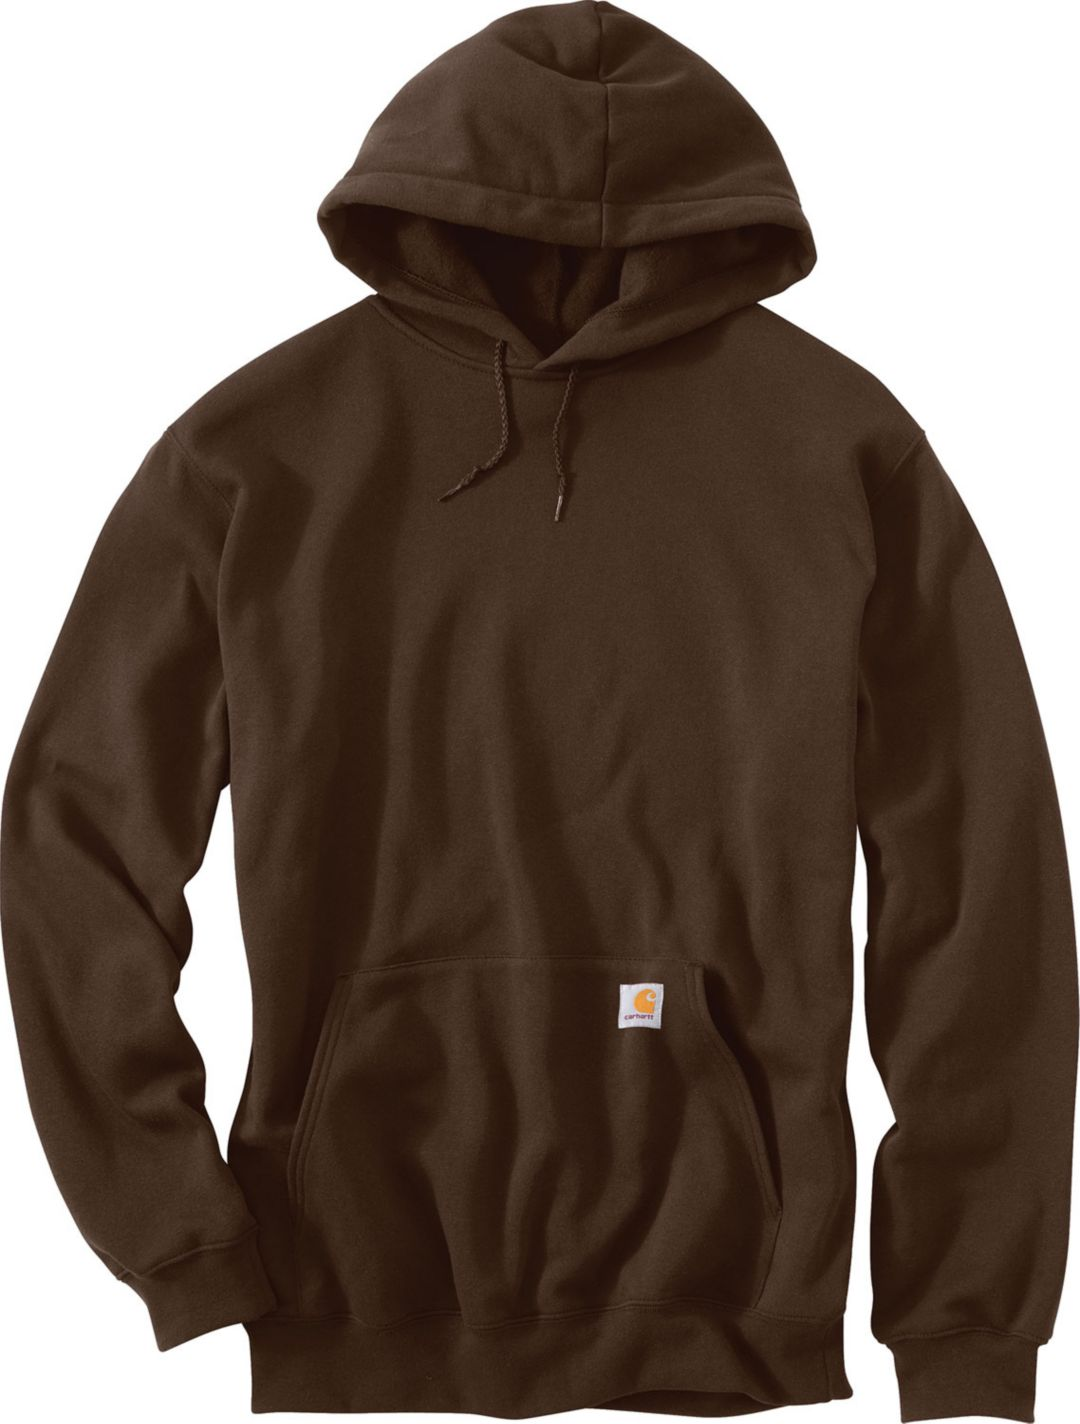 sports shoes ea261 11da5 Carhartt Men's Midweight Hooded Sweatshirt